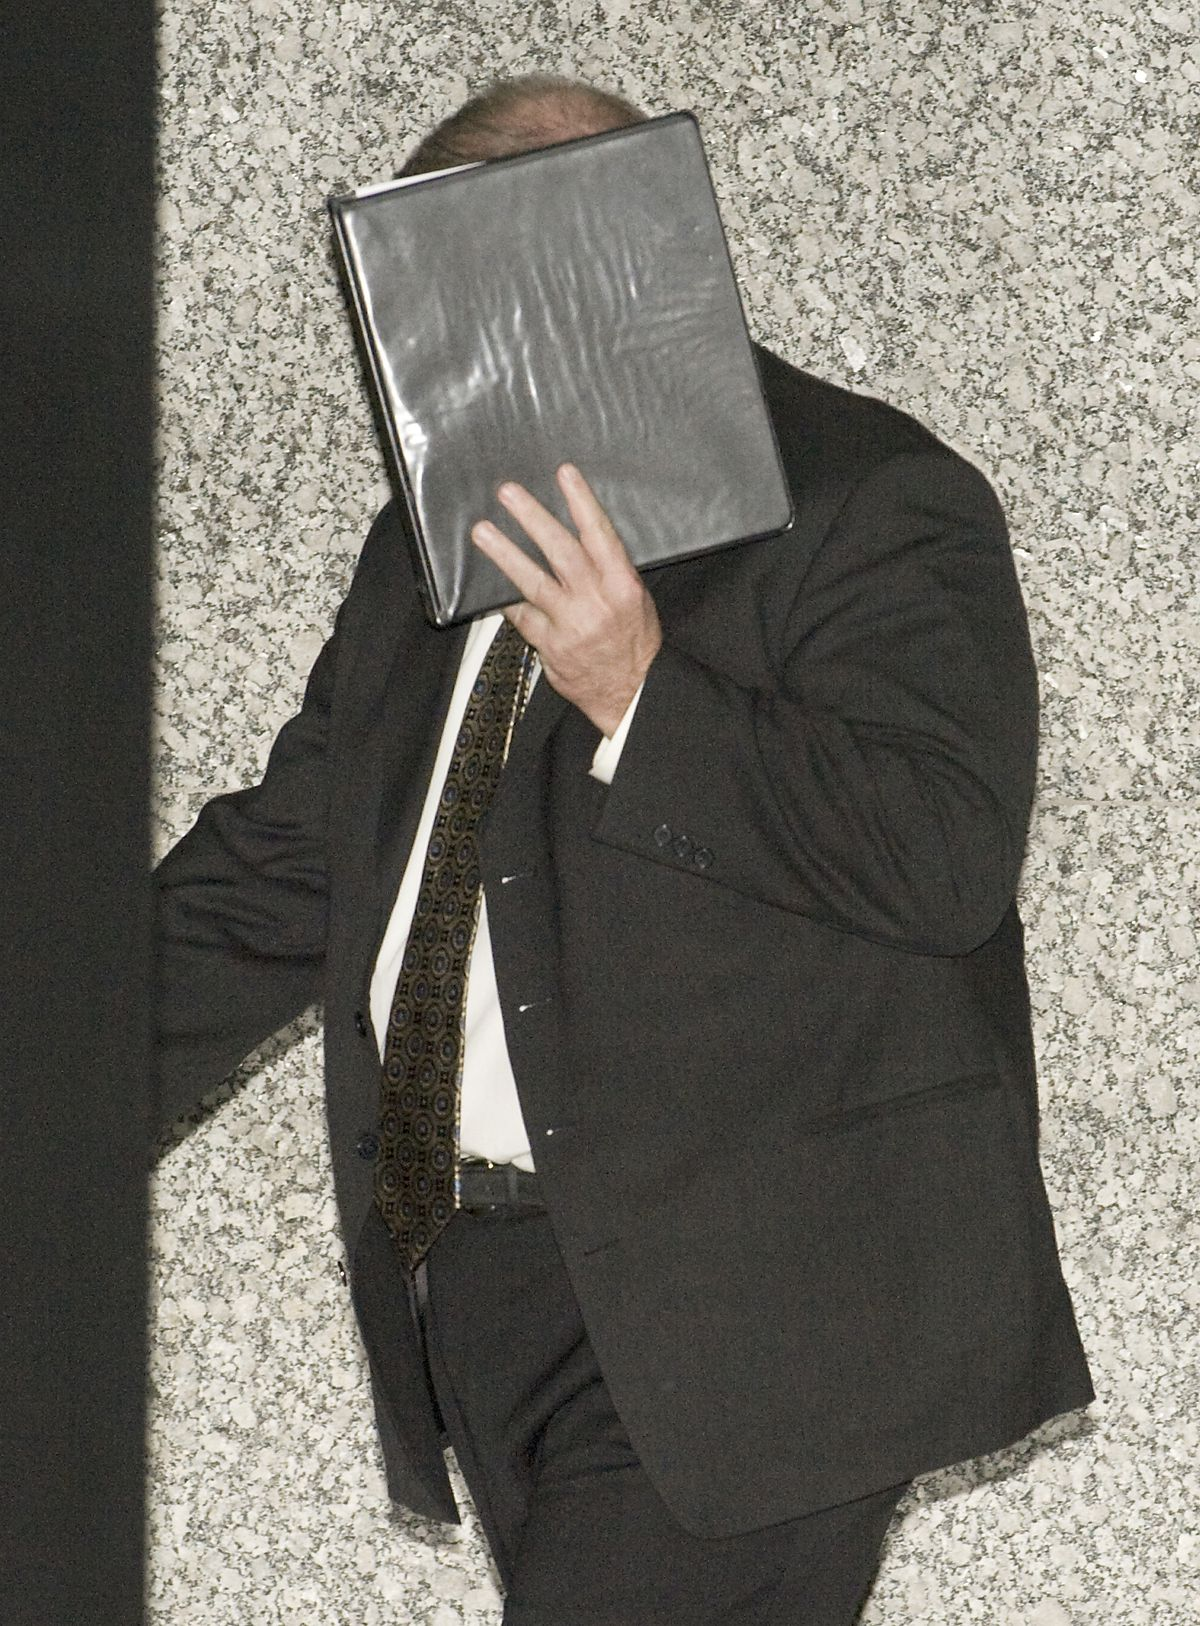 Glenn Lewellen covers his face as he leaves the Dirksen Federal Building in 2011.